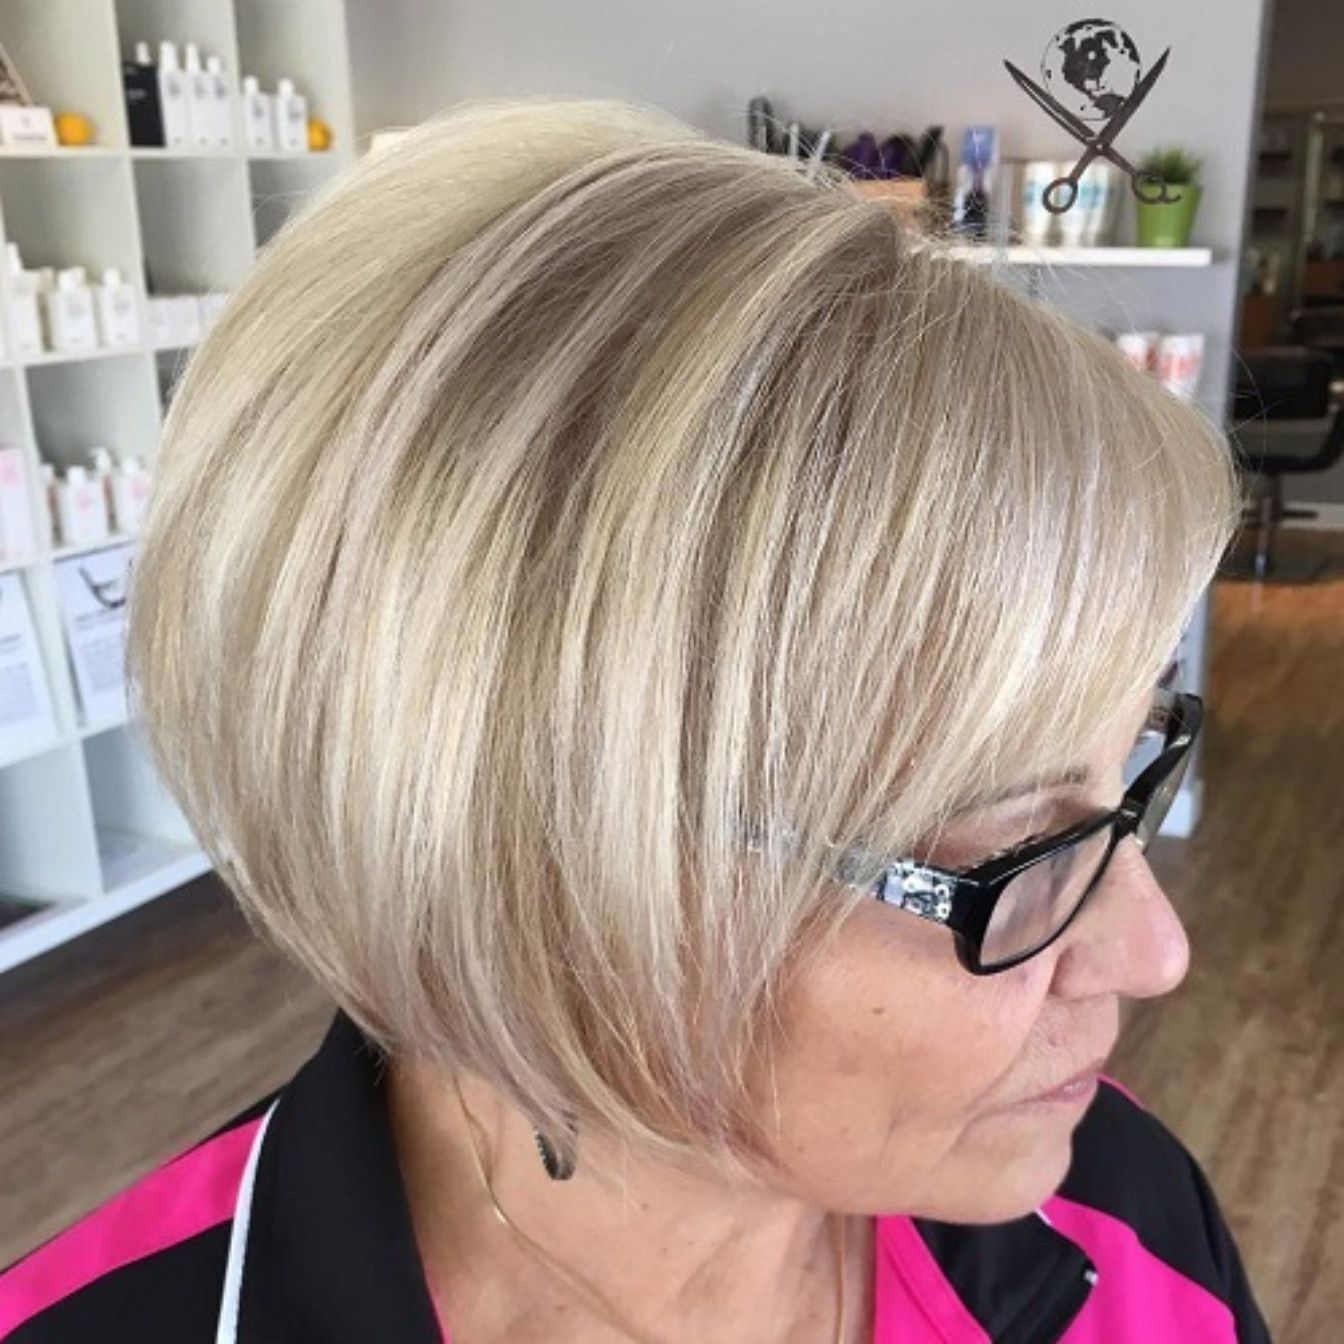 Classy and Simple Short Hairstyles for Women over Hair